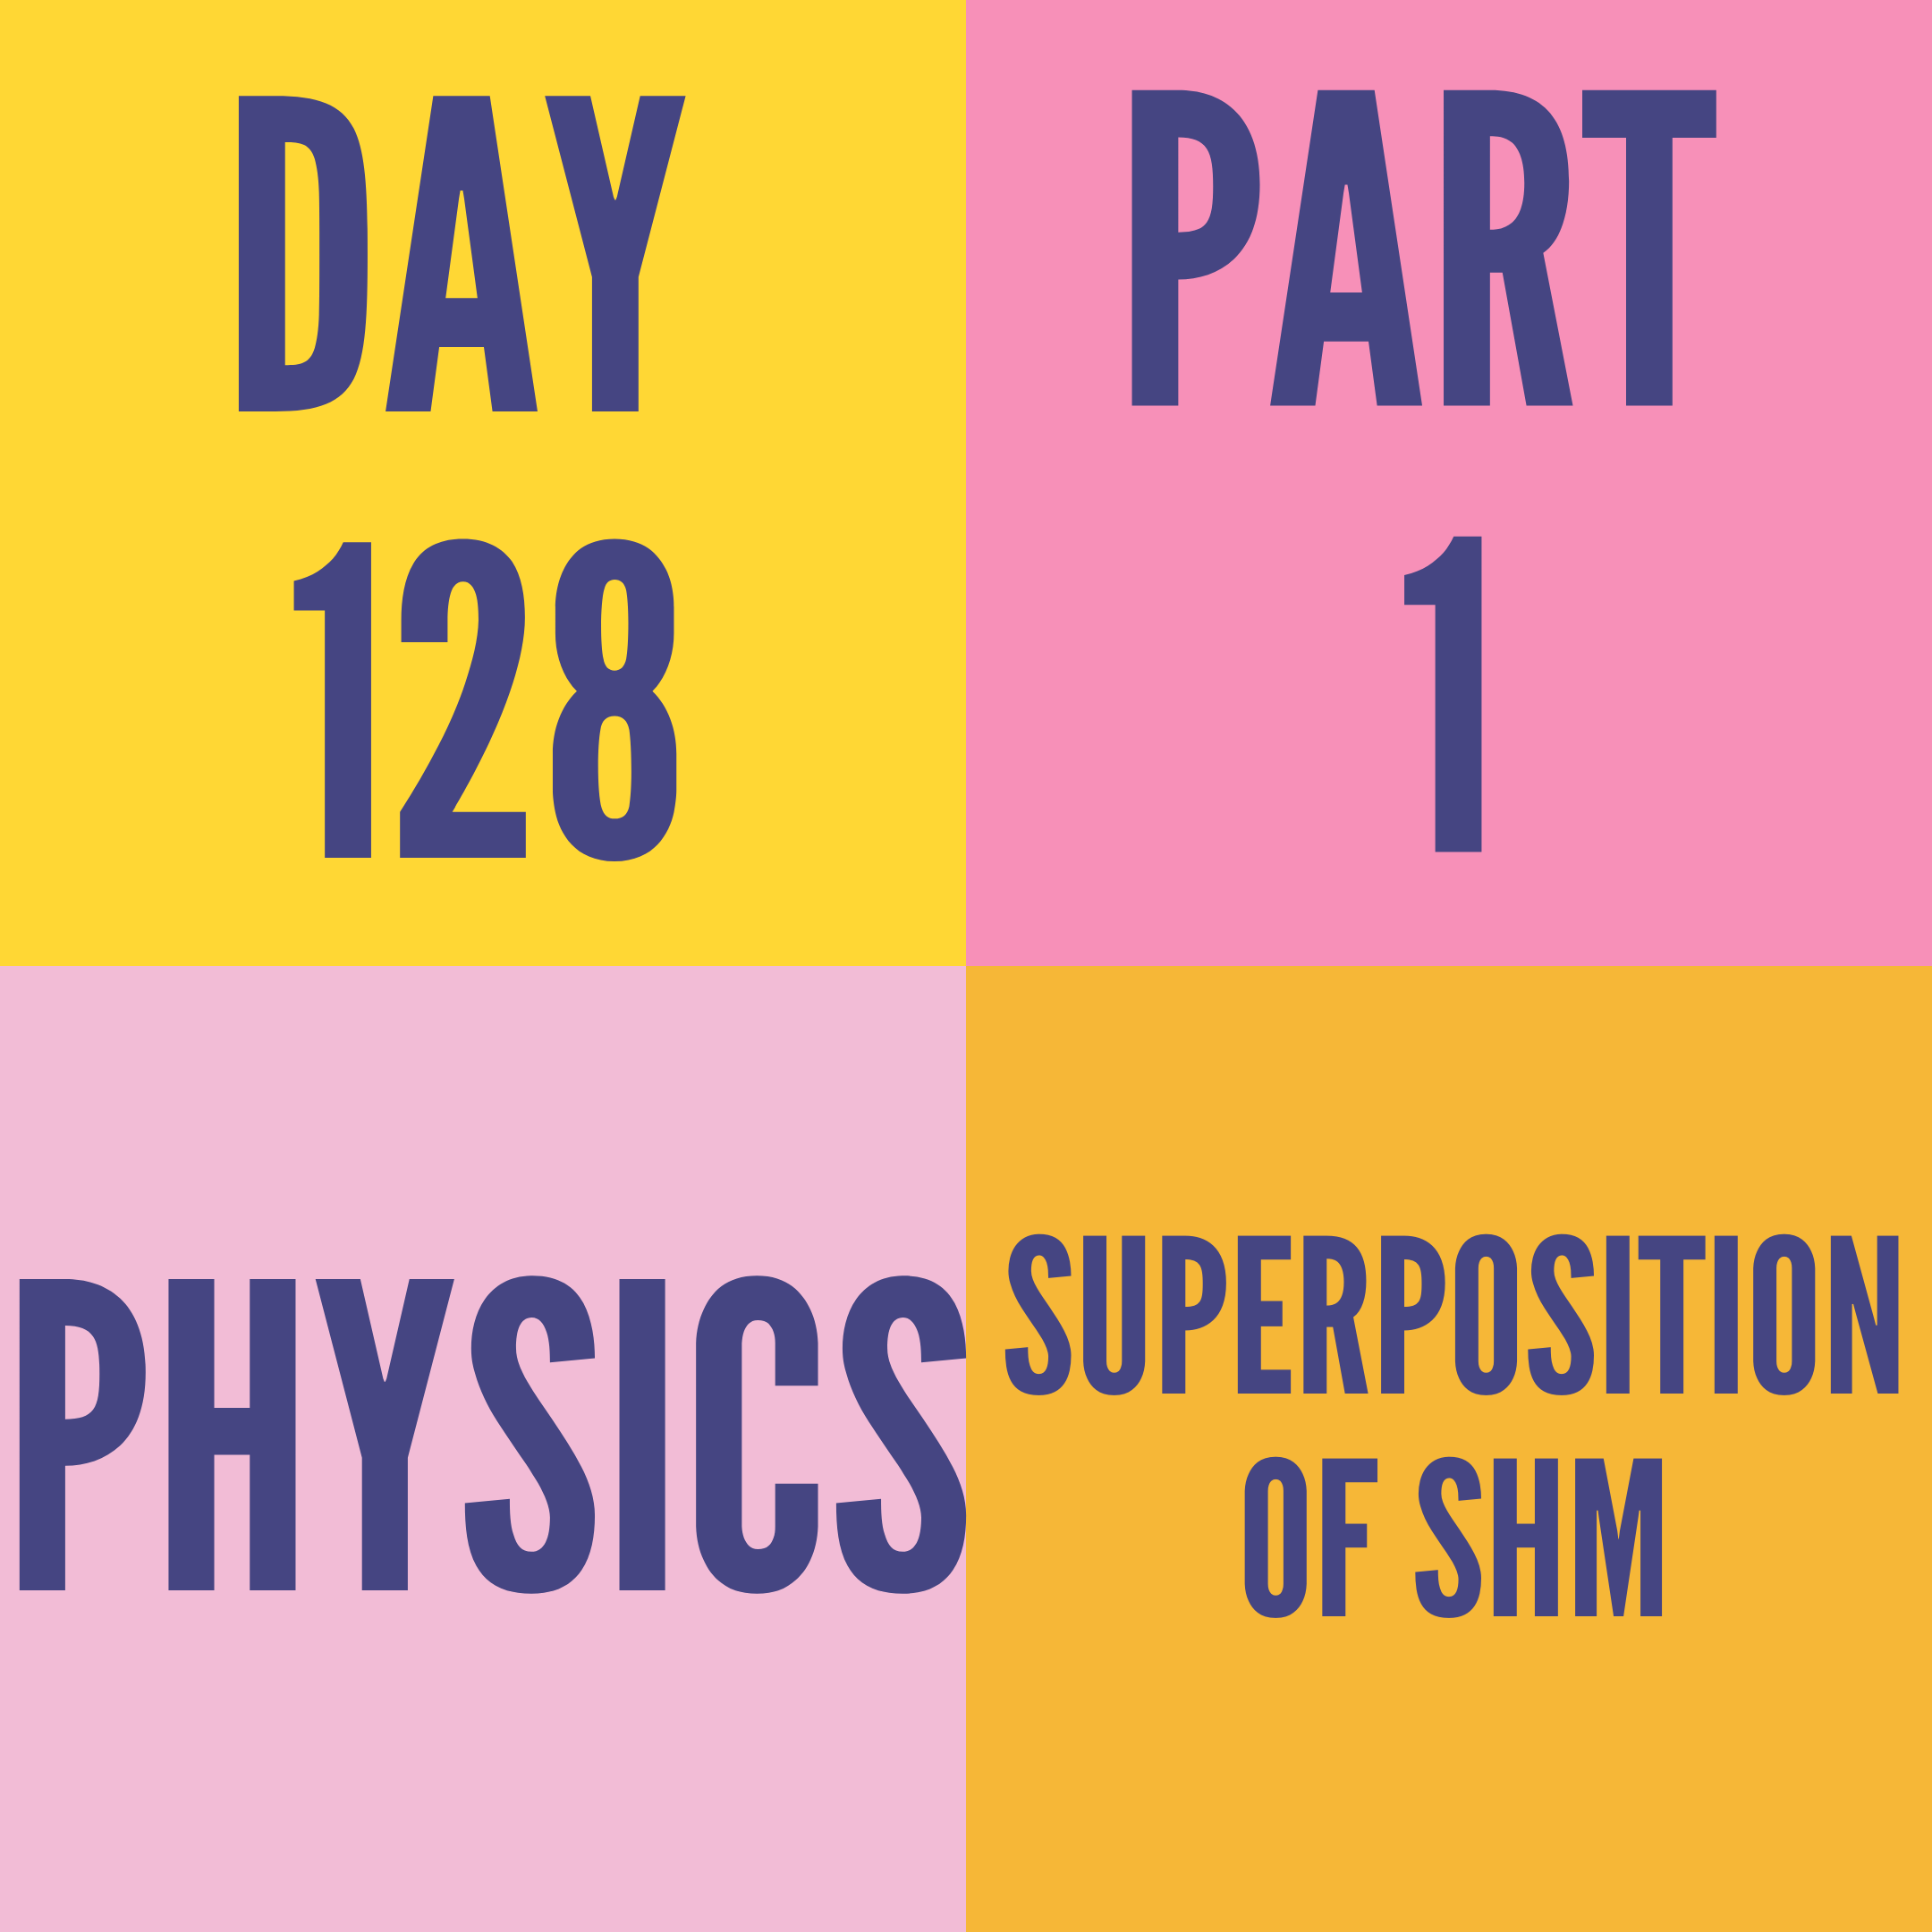 DAY-128 PART-1 SUPERPOSITION OF SHM